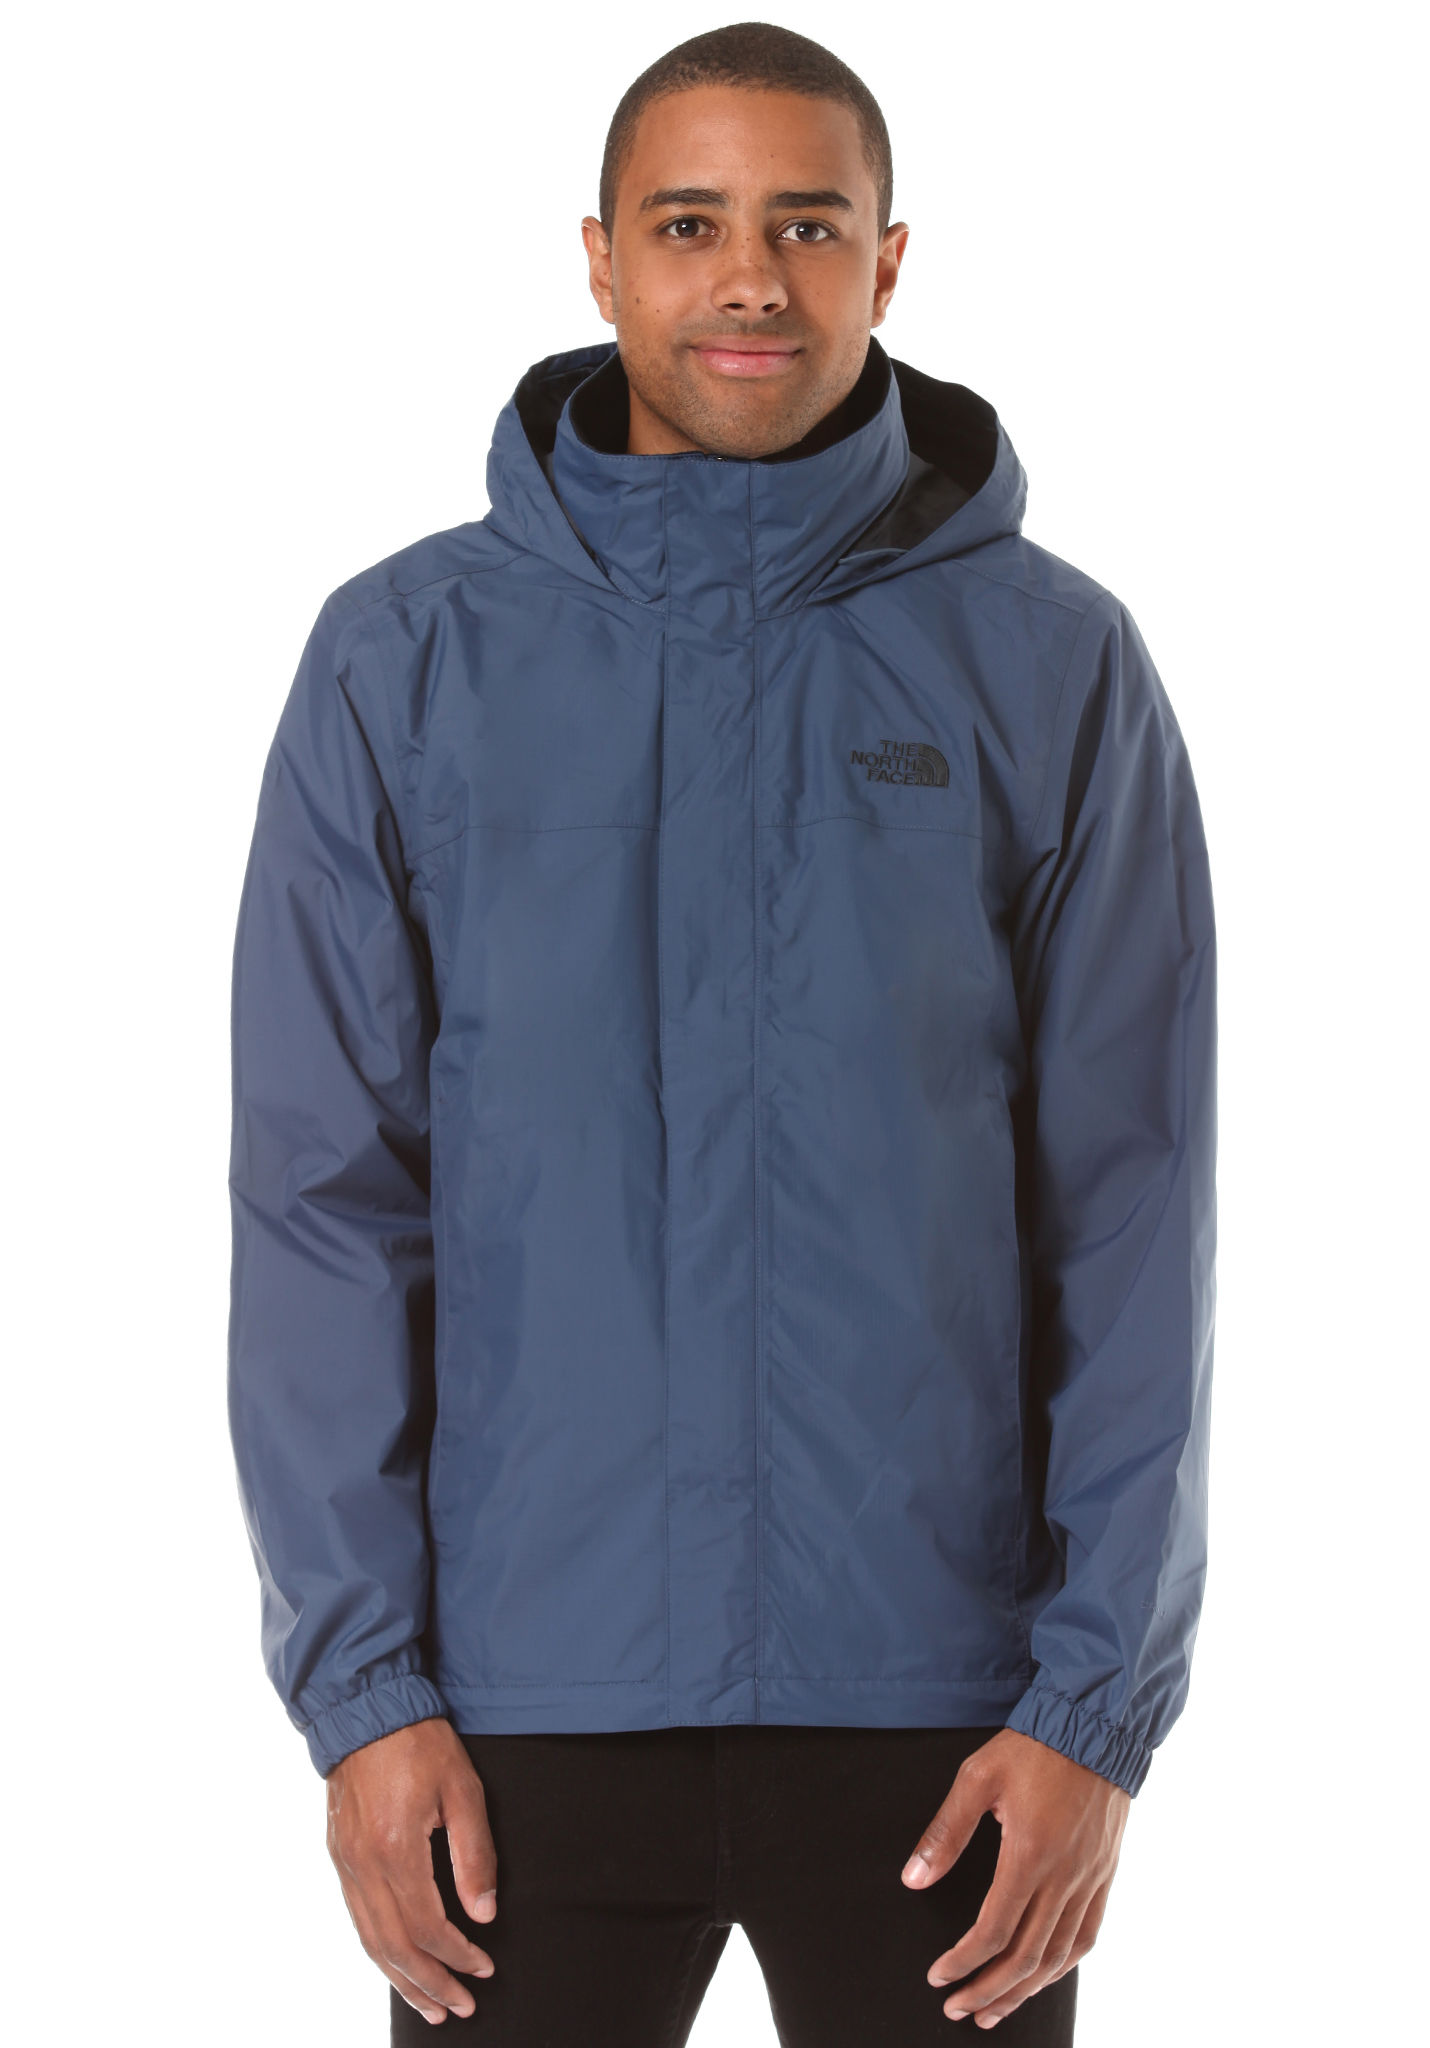 THE NORTH FACE Resolve 2 - Functional Jacket for Men - Blue - Planet Sports 4a80af187e5f